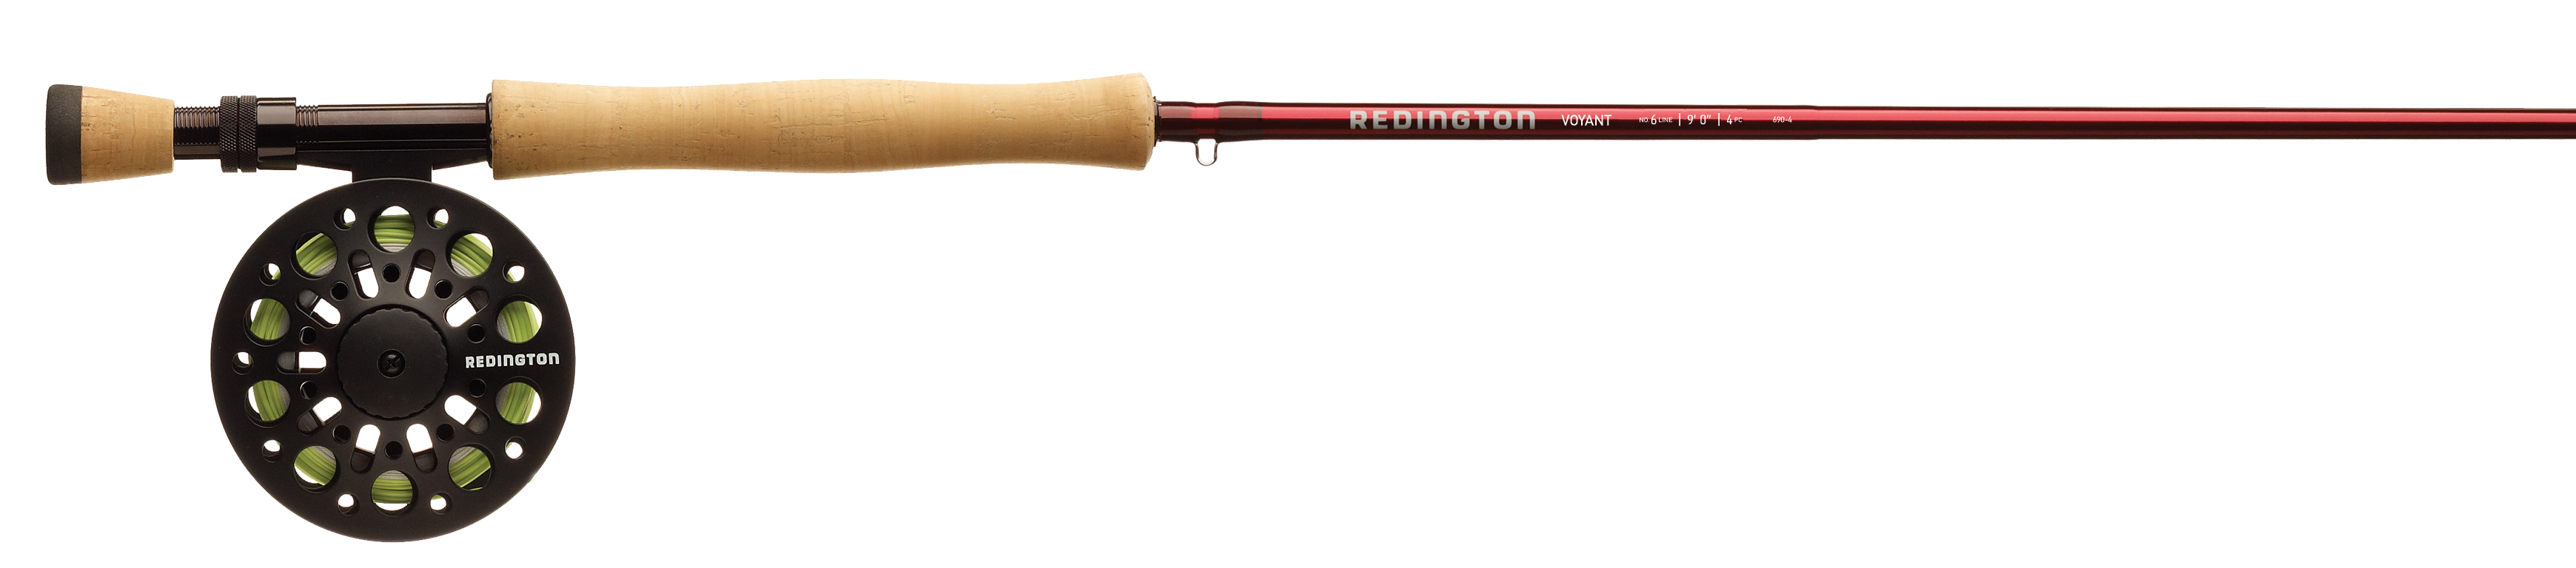 Image gallery fly rod for Fly fishing with spinning rod